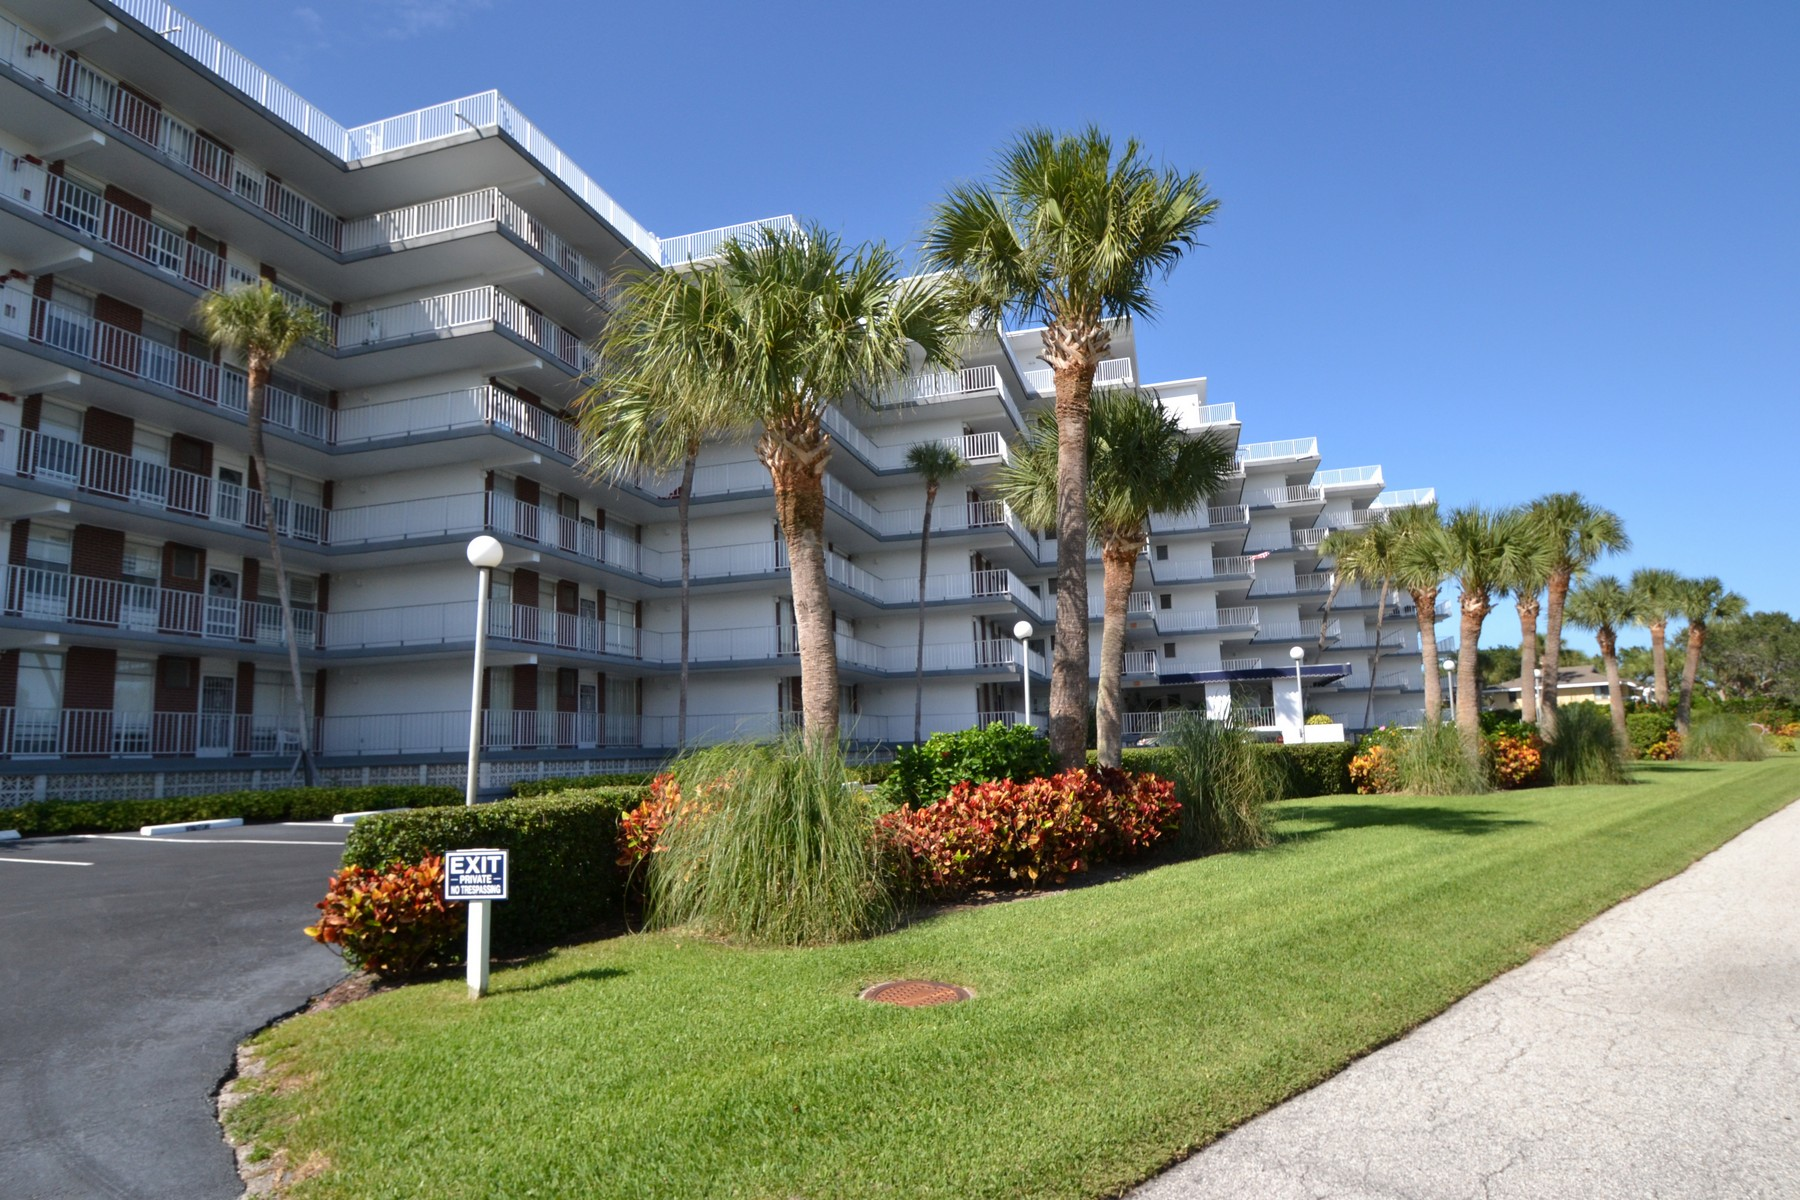 Condominiums for Rent at Only Blocks To The Beach! 935 E Causeway Blvd #205 Vero Beach, Florida 32963 United States